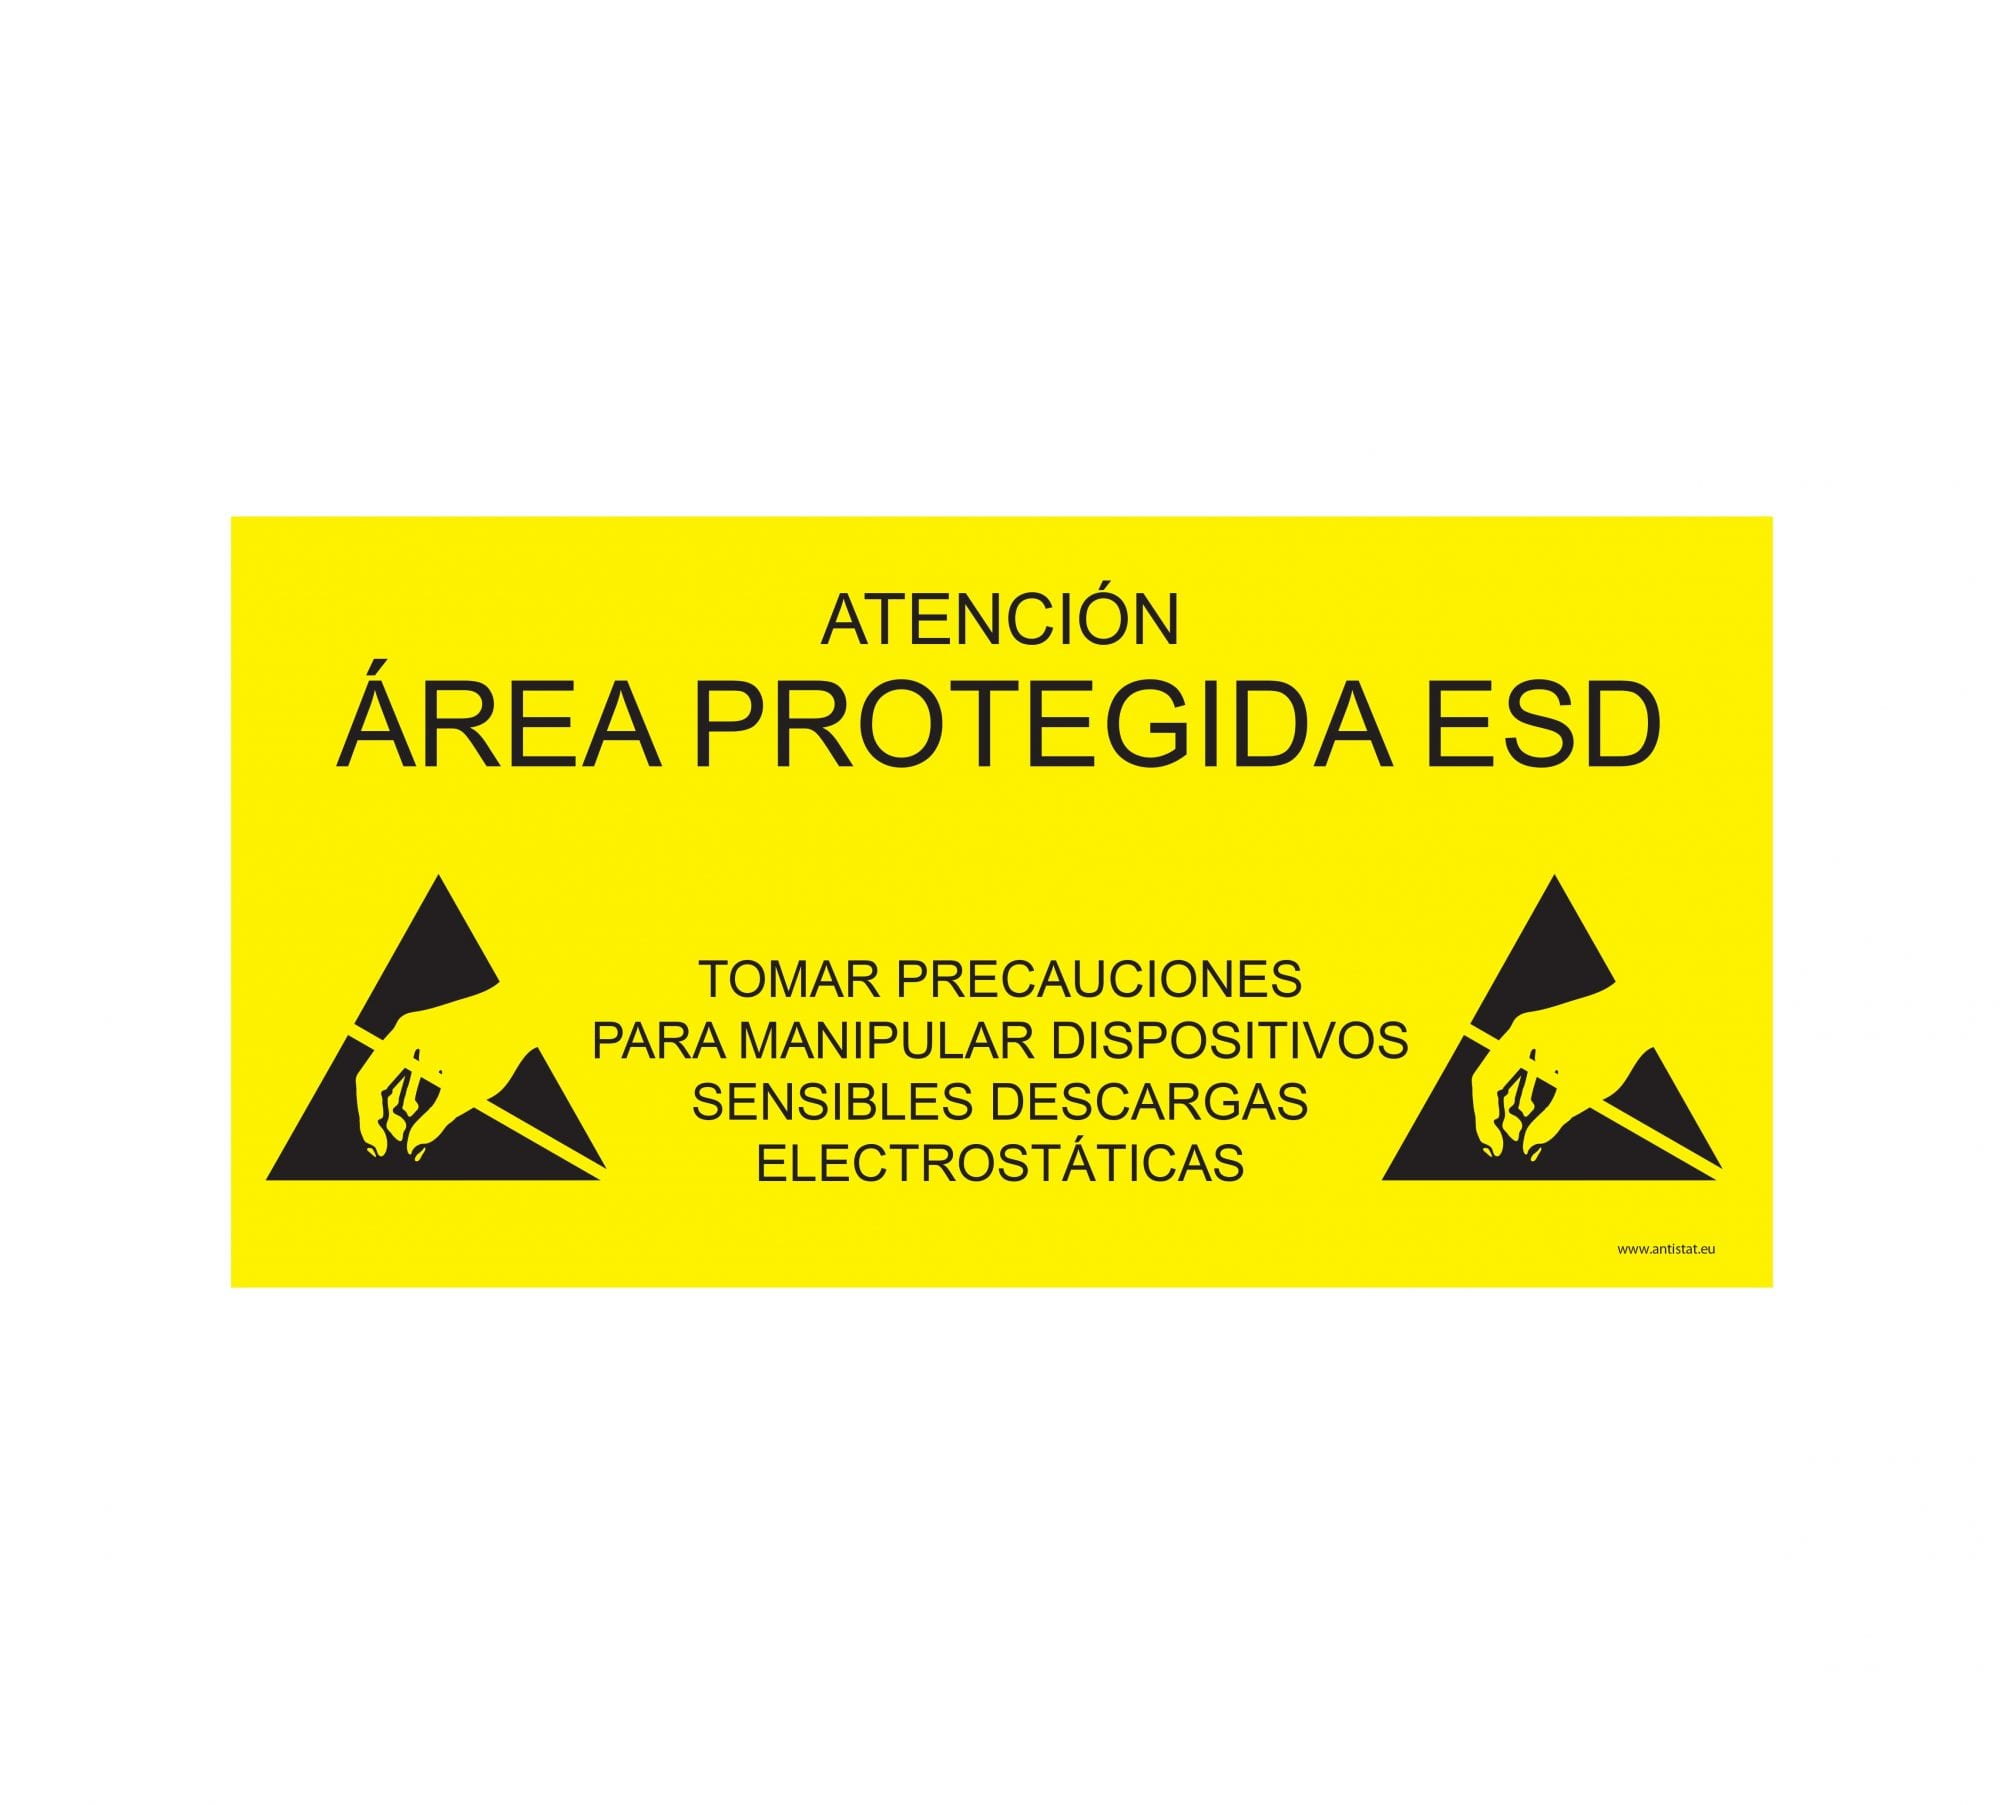 ESD Protected Area Sign_305x105_yellow background_SPANISH